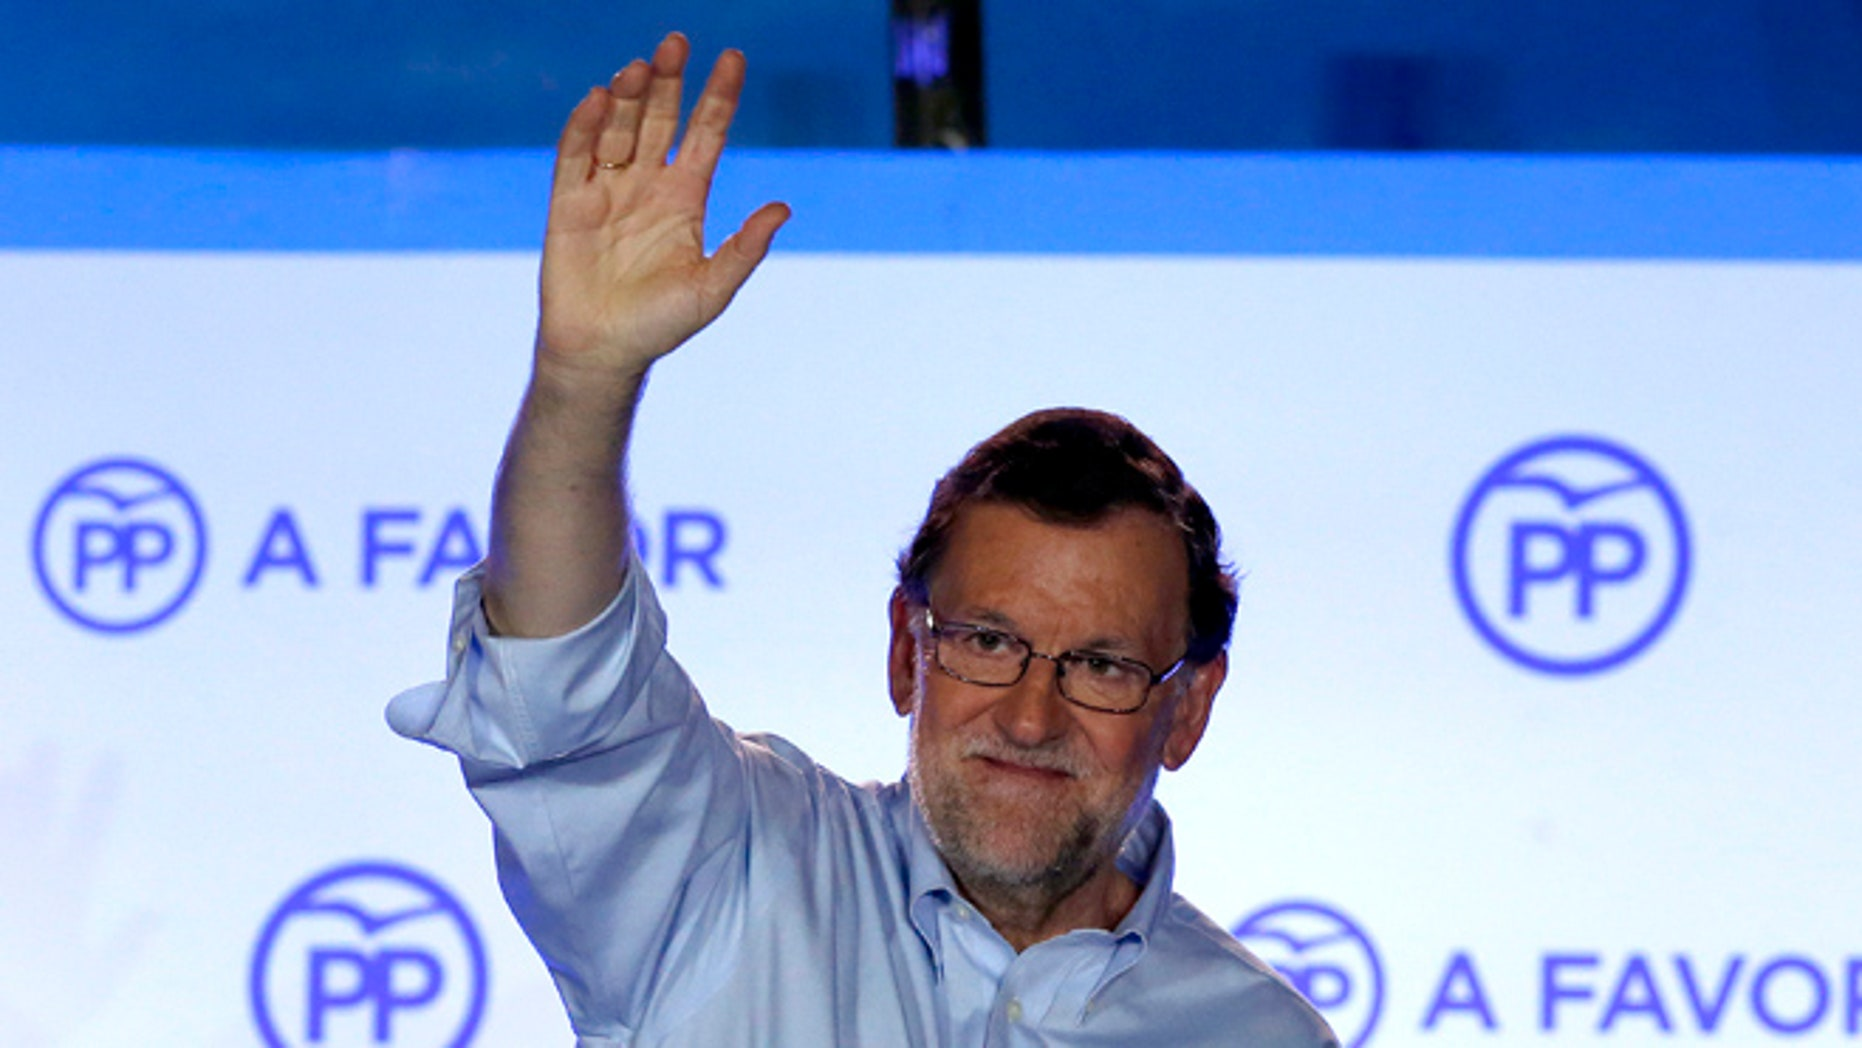 Spain's acting Primer Minister and candidate of Popular Party Mariano Rajoy, waves to his supporters as he celebrates the results of the party during the national elections in Madrid, Spain, Sunday, June 26, 2016. Spain's repeat election on Sunday failed to clarify the political future of the European Union's fifth-largest economy, with the main parties placing roughly the same as in last December's ballot, which brought six months of stalemate. (AP Photo/Daniel Ochoa de Olza)